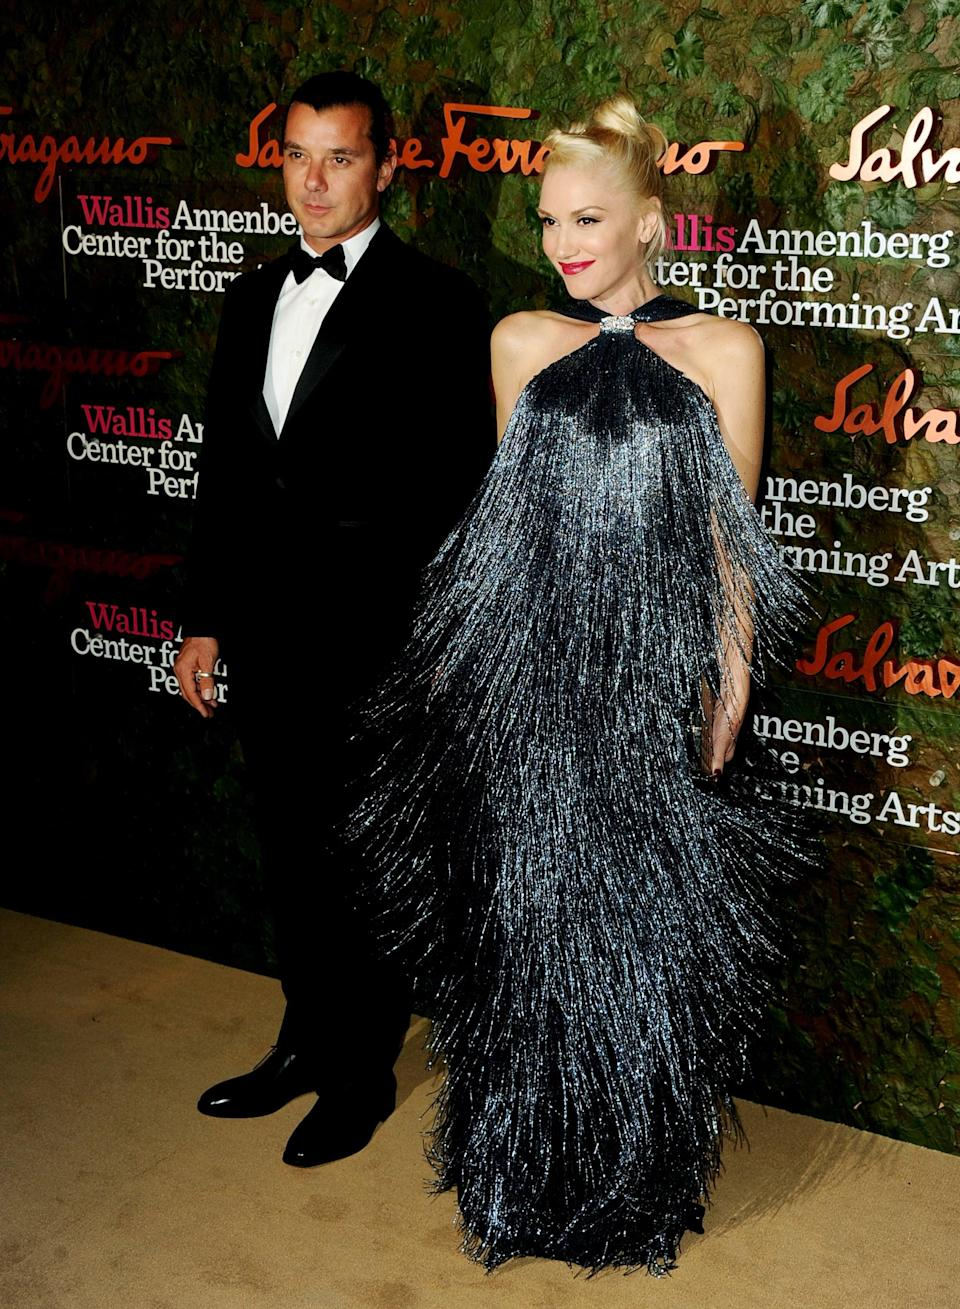 """<p>She wore Salvatore Ferragamo's swingy fringe from the resort 2012 collection for the Performing Arts gala in 2013, which she attended with then-husband <a class=""""link rapid-noclick-resp"""" href=""""https://www.popsugar.co.uk/Gavin-Rossdale"""" rel=""""nofollow noopener"""" target=""""_blank"""" data-ylk=""""slk:Gavin Rossdale"""">Gavin Rossdale</a>.</p>"""